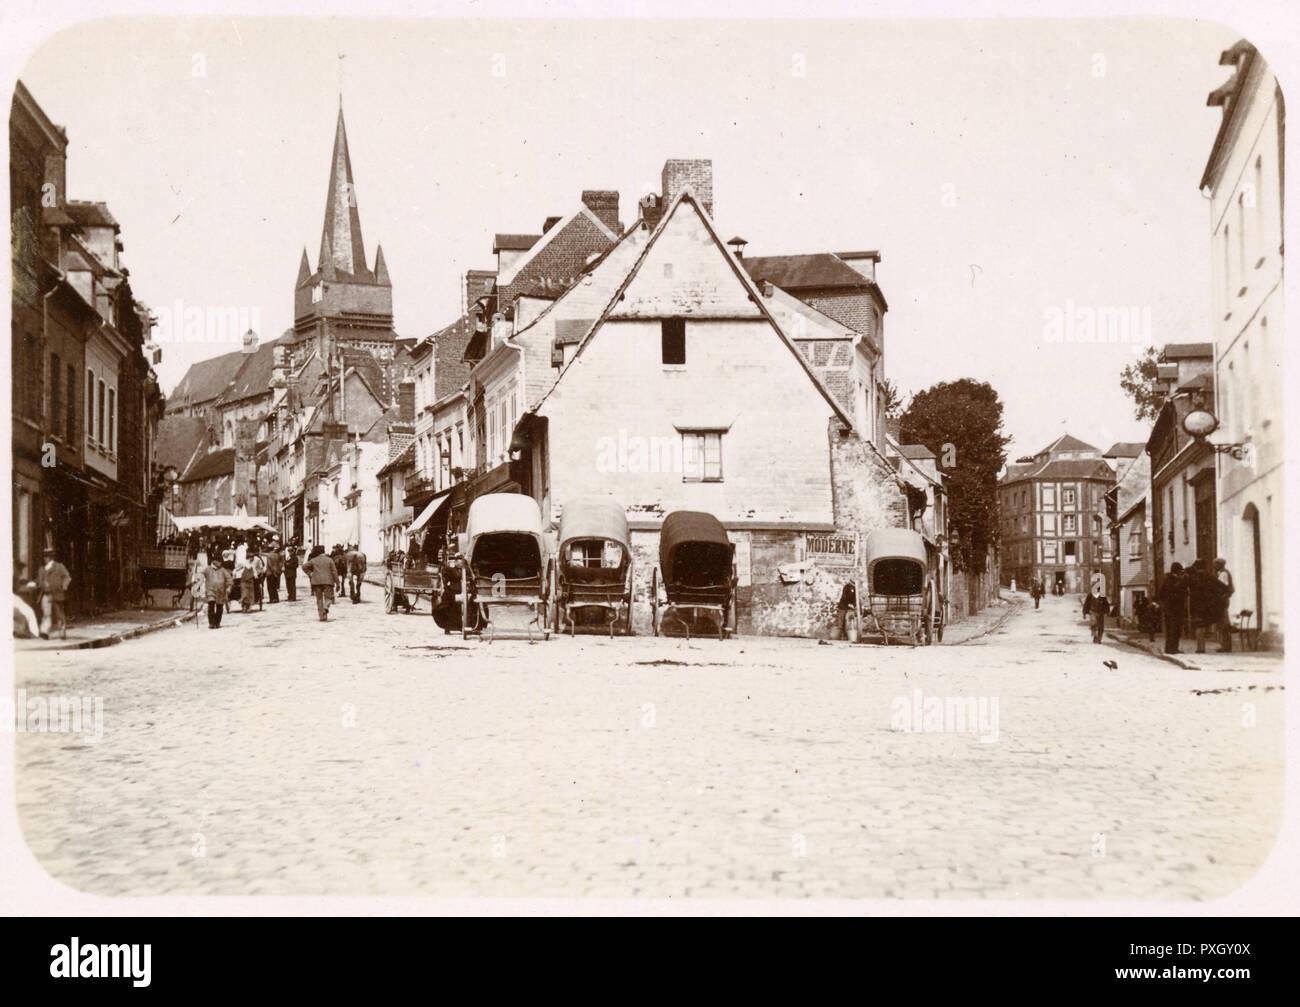 Street Scene - Neufchatel-en-Bray - a commune situated in the Seine-Maritime department of the Normandy Region, northern France.     Date: 1899 - Stock Image